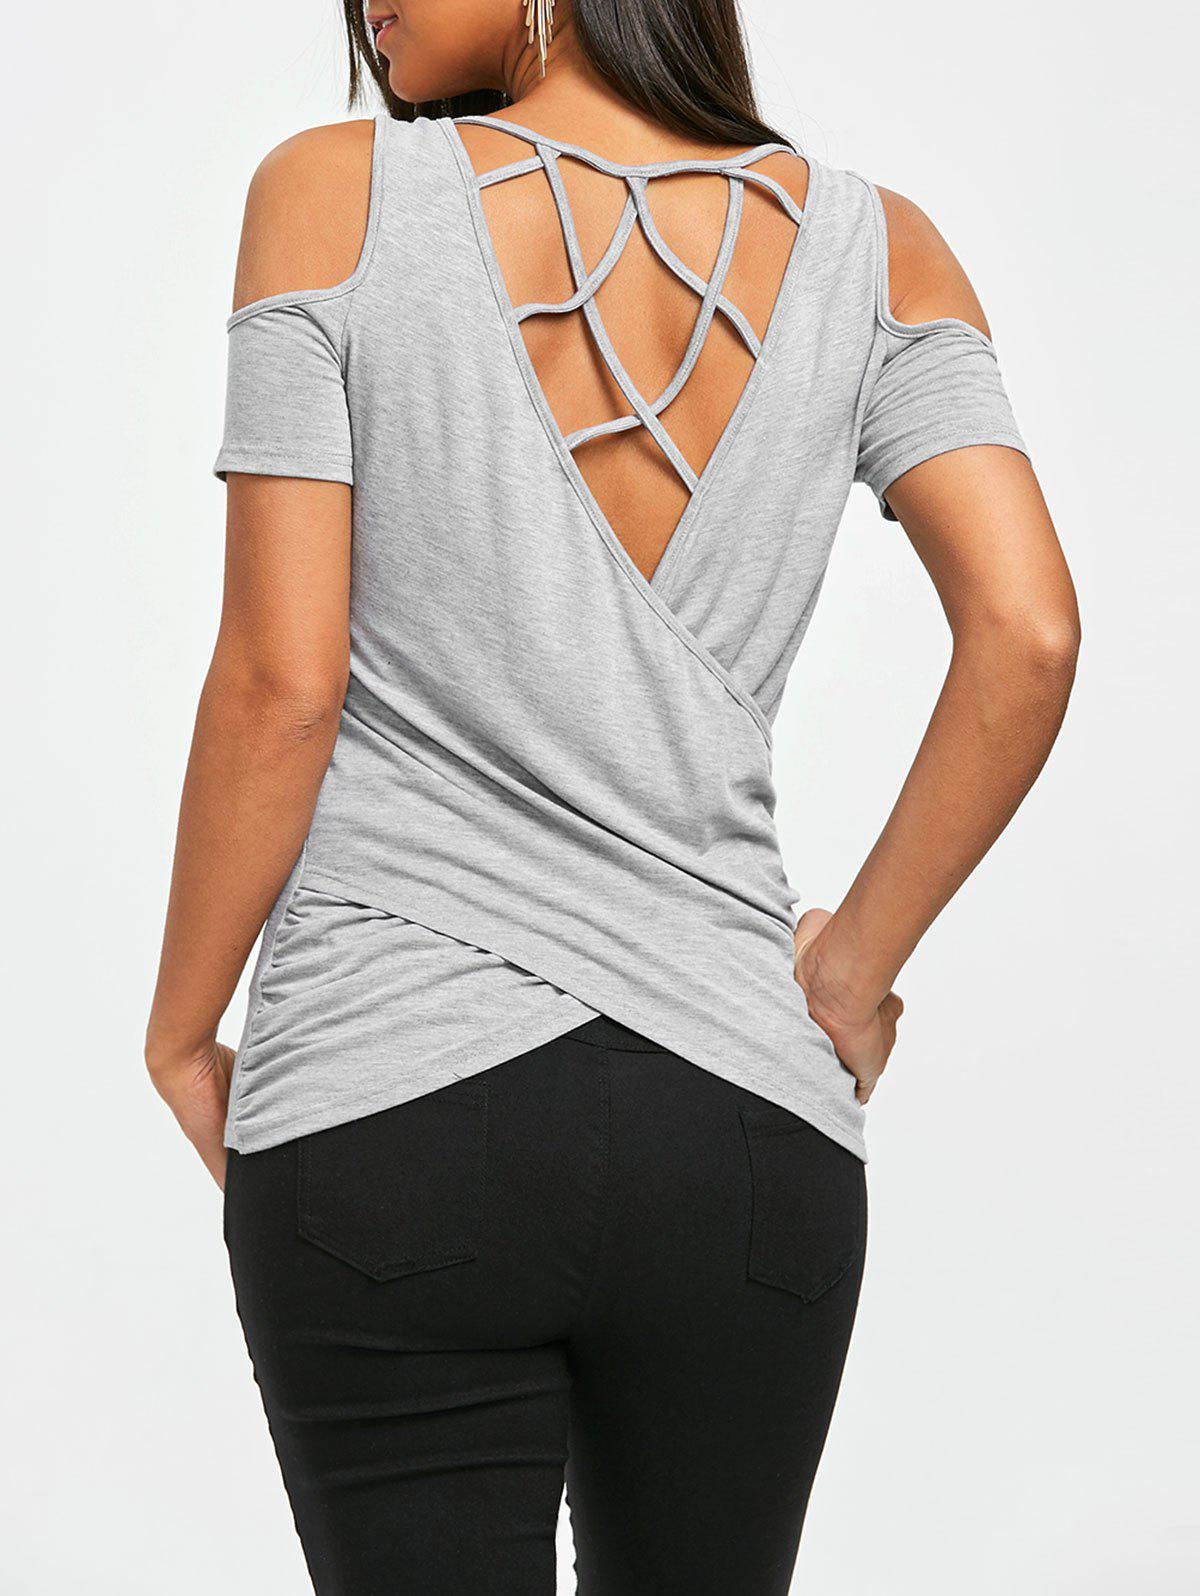 Cold Shoulder Criss Cross Lattice Cut T-shirt ribbed criss cross front cold shoulder t shirt